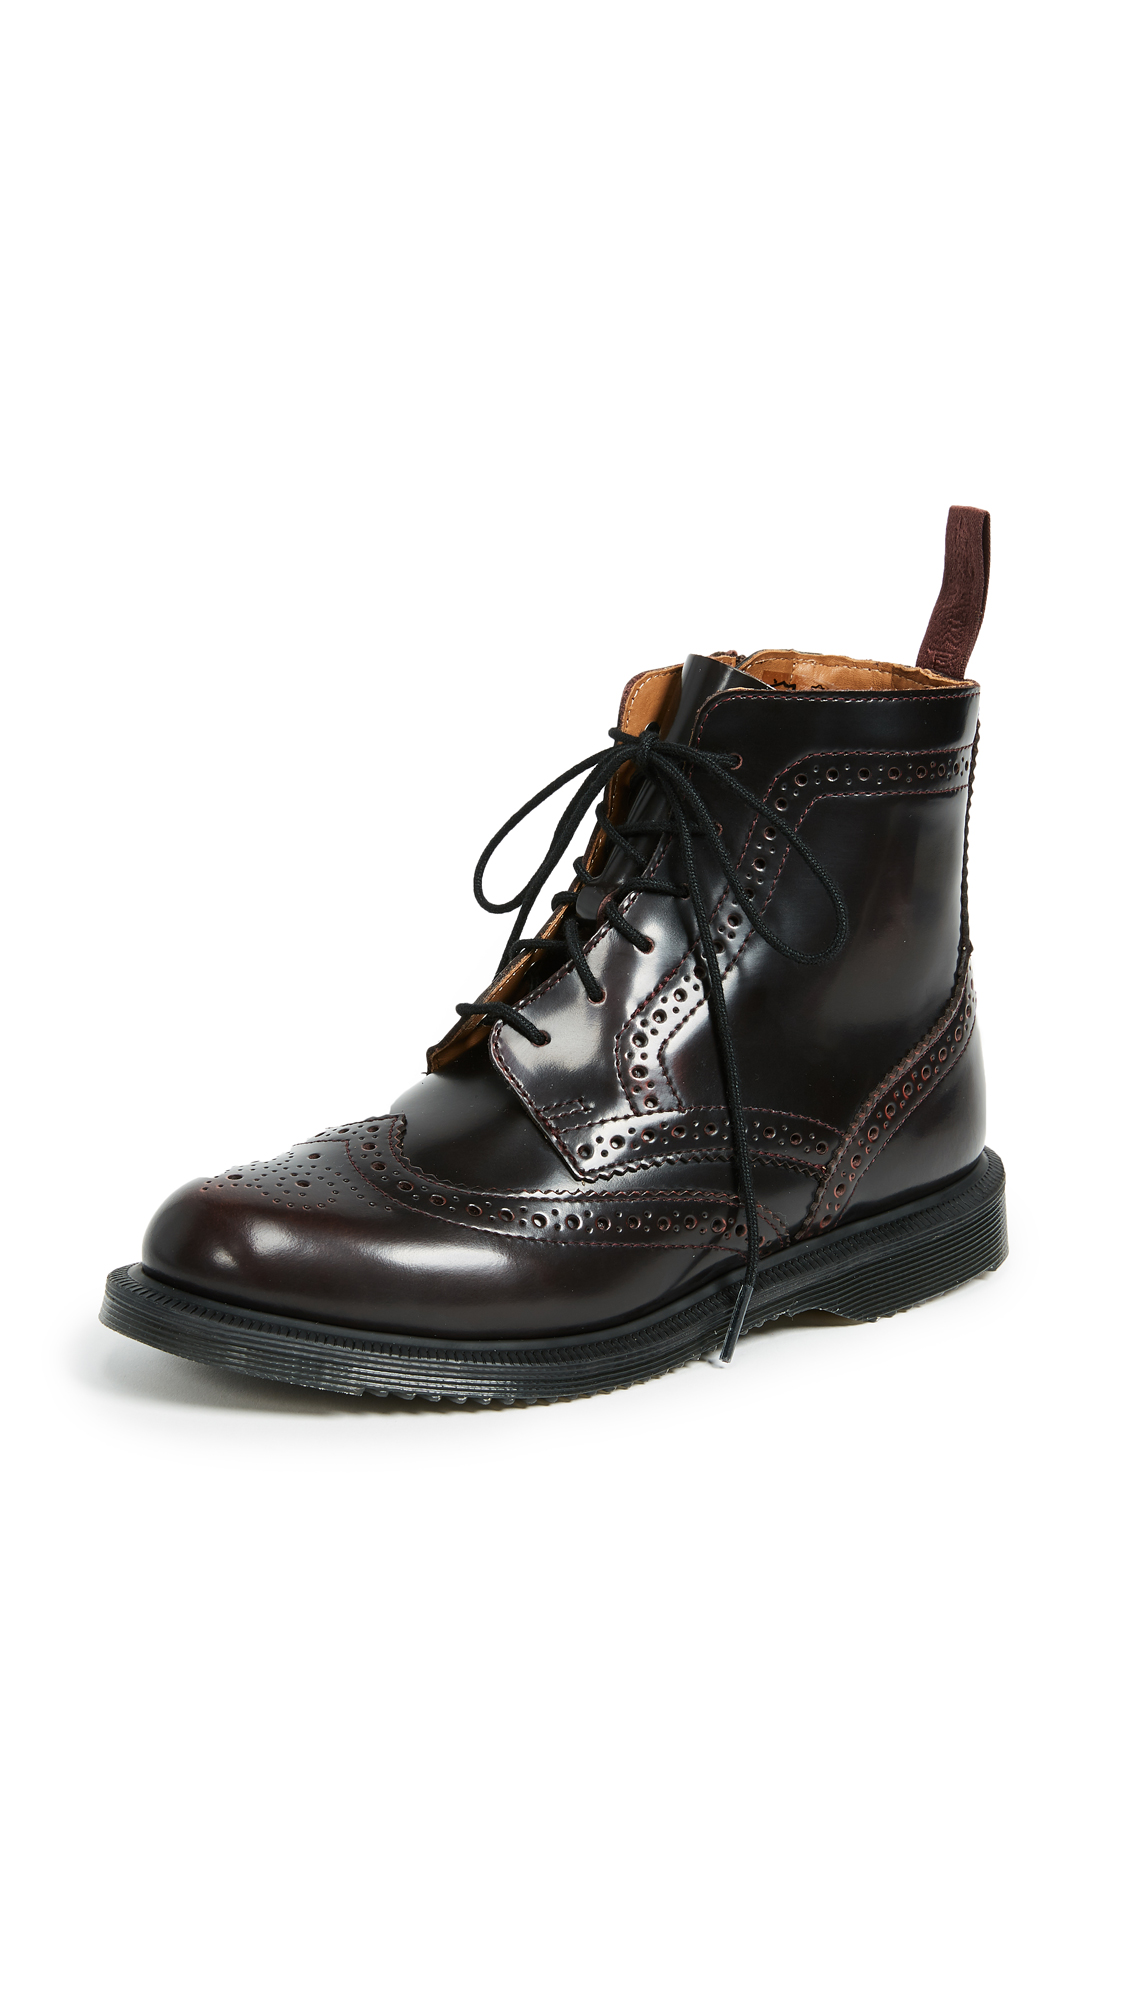 Dr. Martens Delphine 8 Eye Brogue Boots - Cherry Red